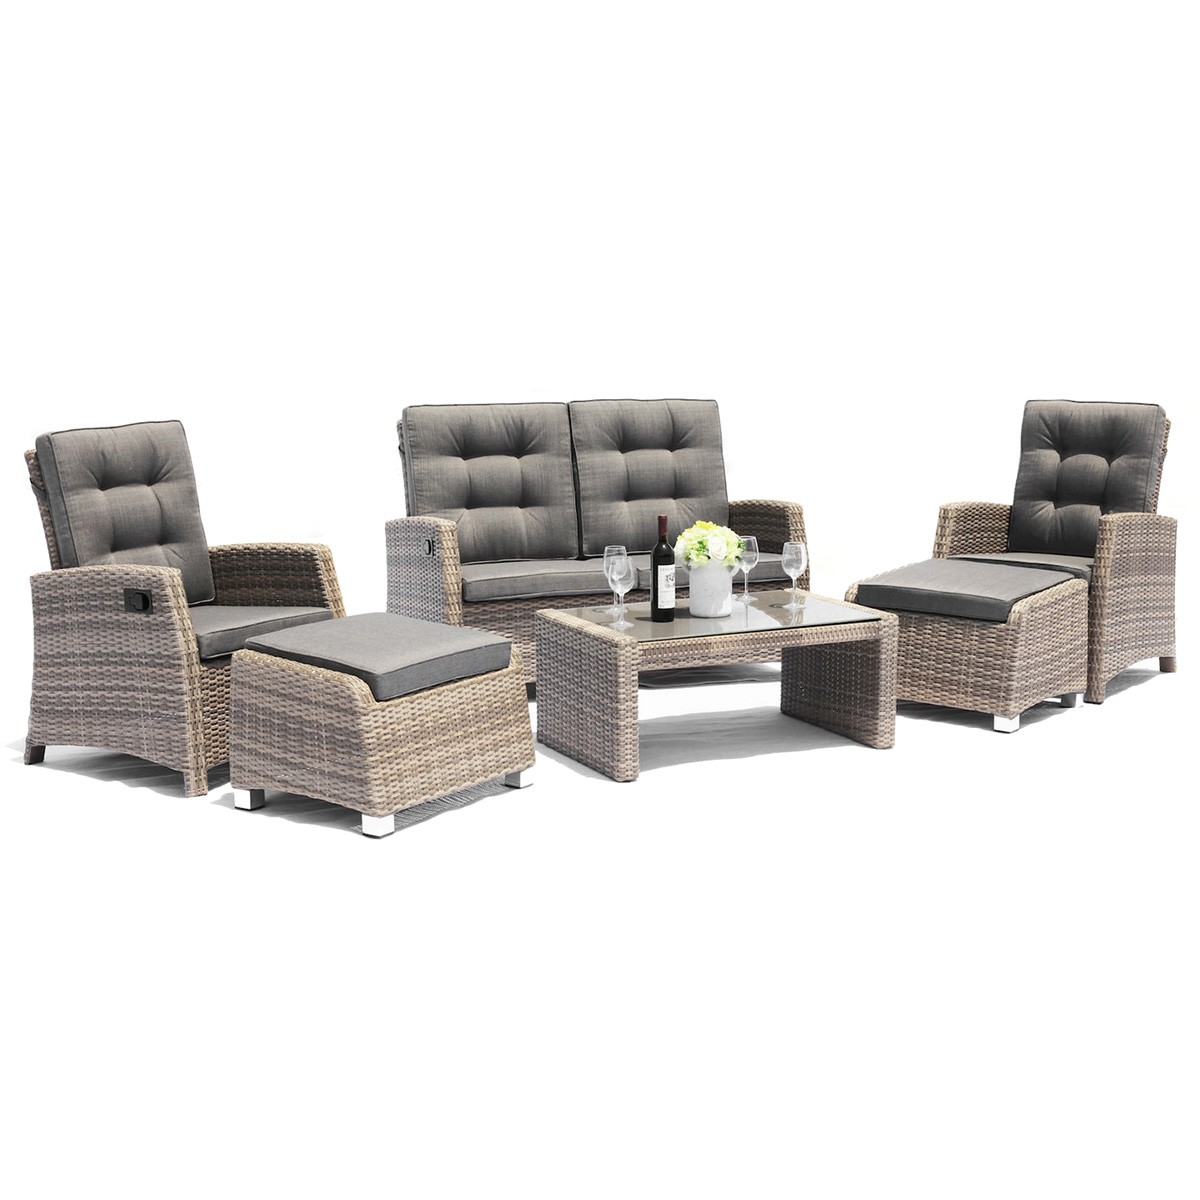 Positano 6 Piece Outdoor Wicker Recliner Lounge Set, Light Brown